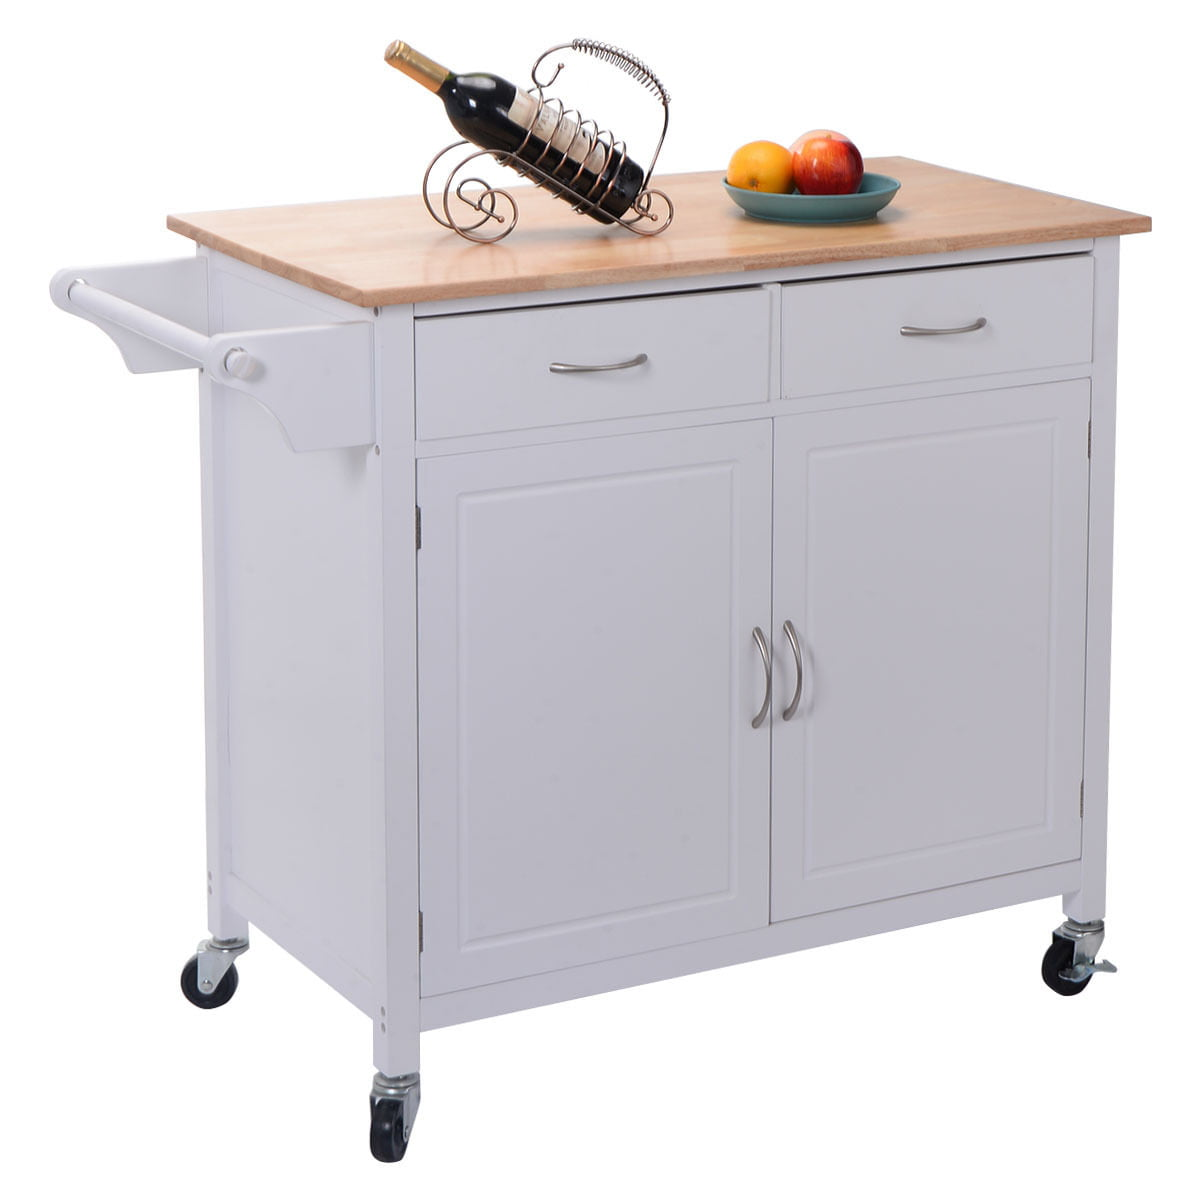 Costway Rolling Kitchen Cart Island Wood Top Storage Trolley Cabinet Utility Modern by Costway